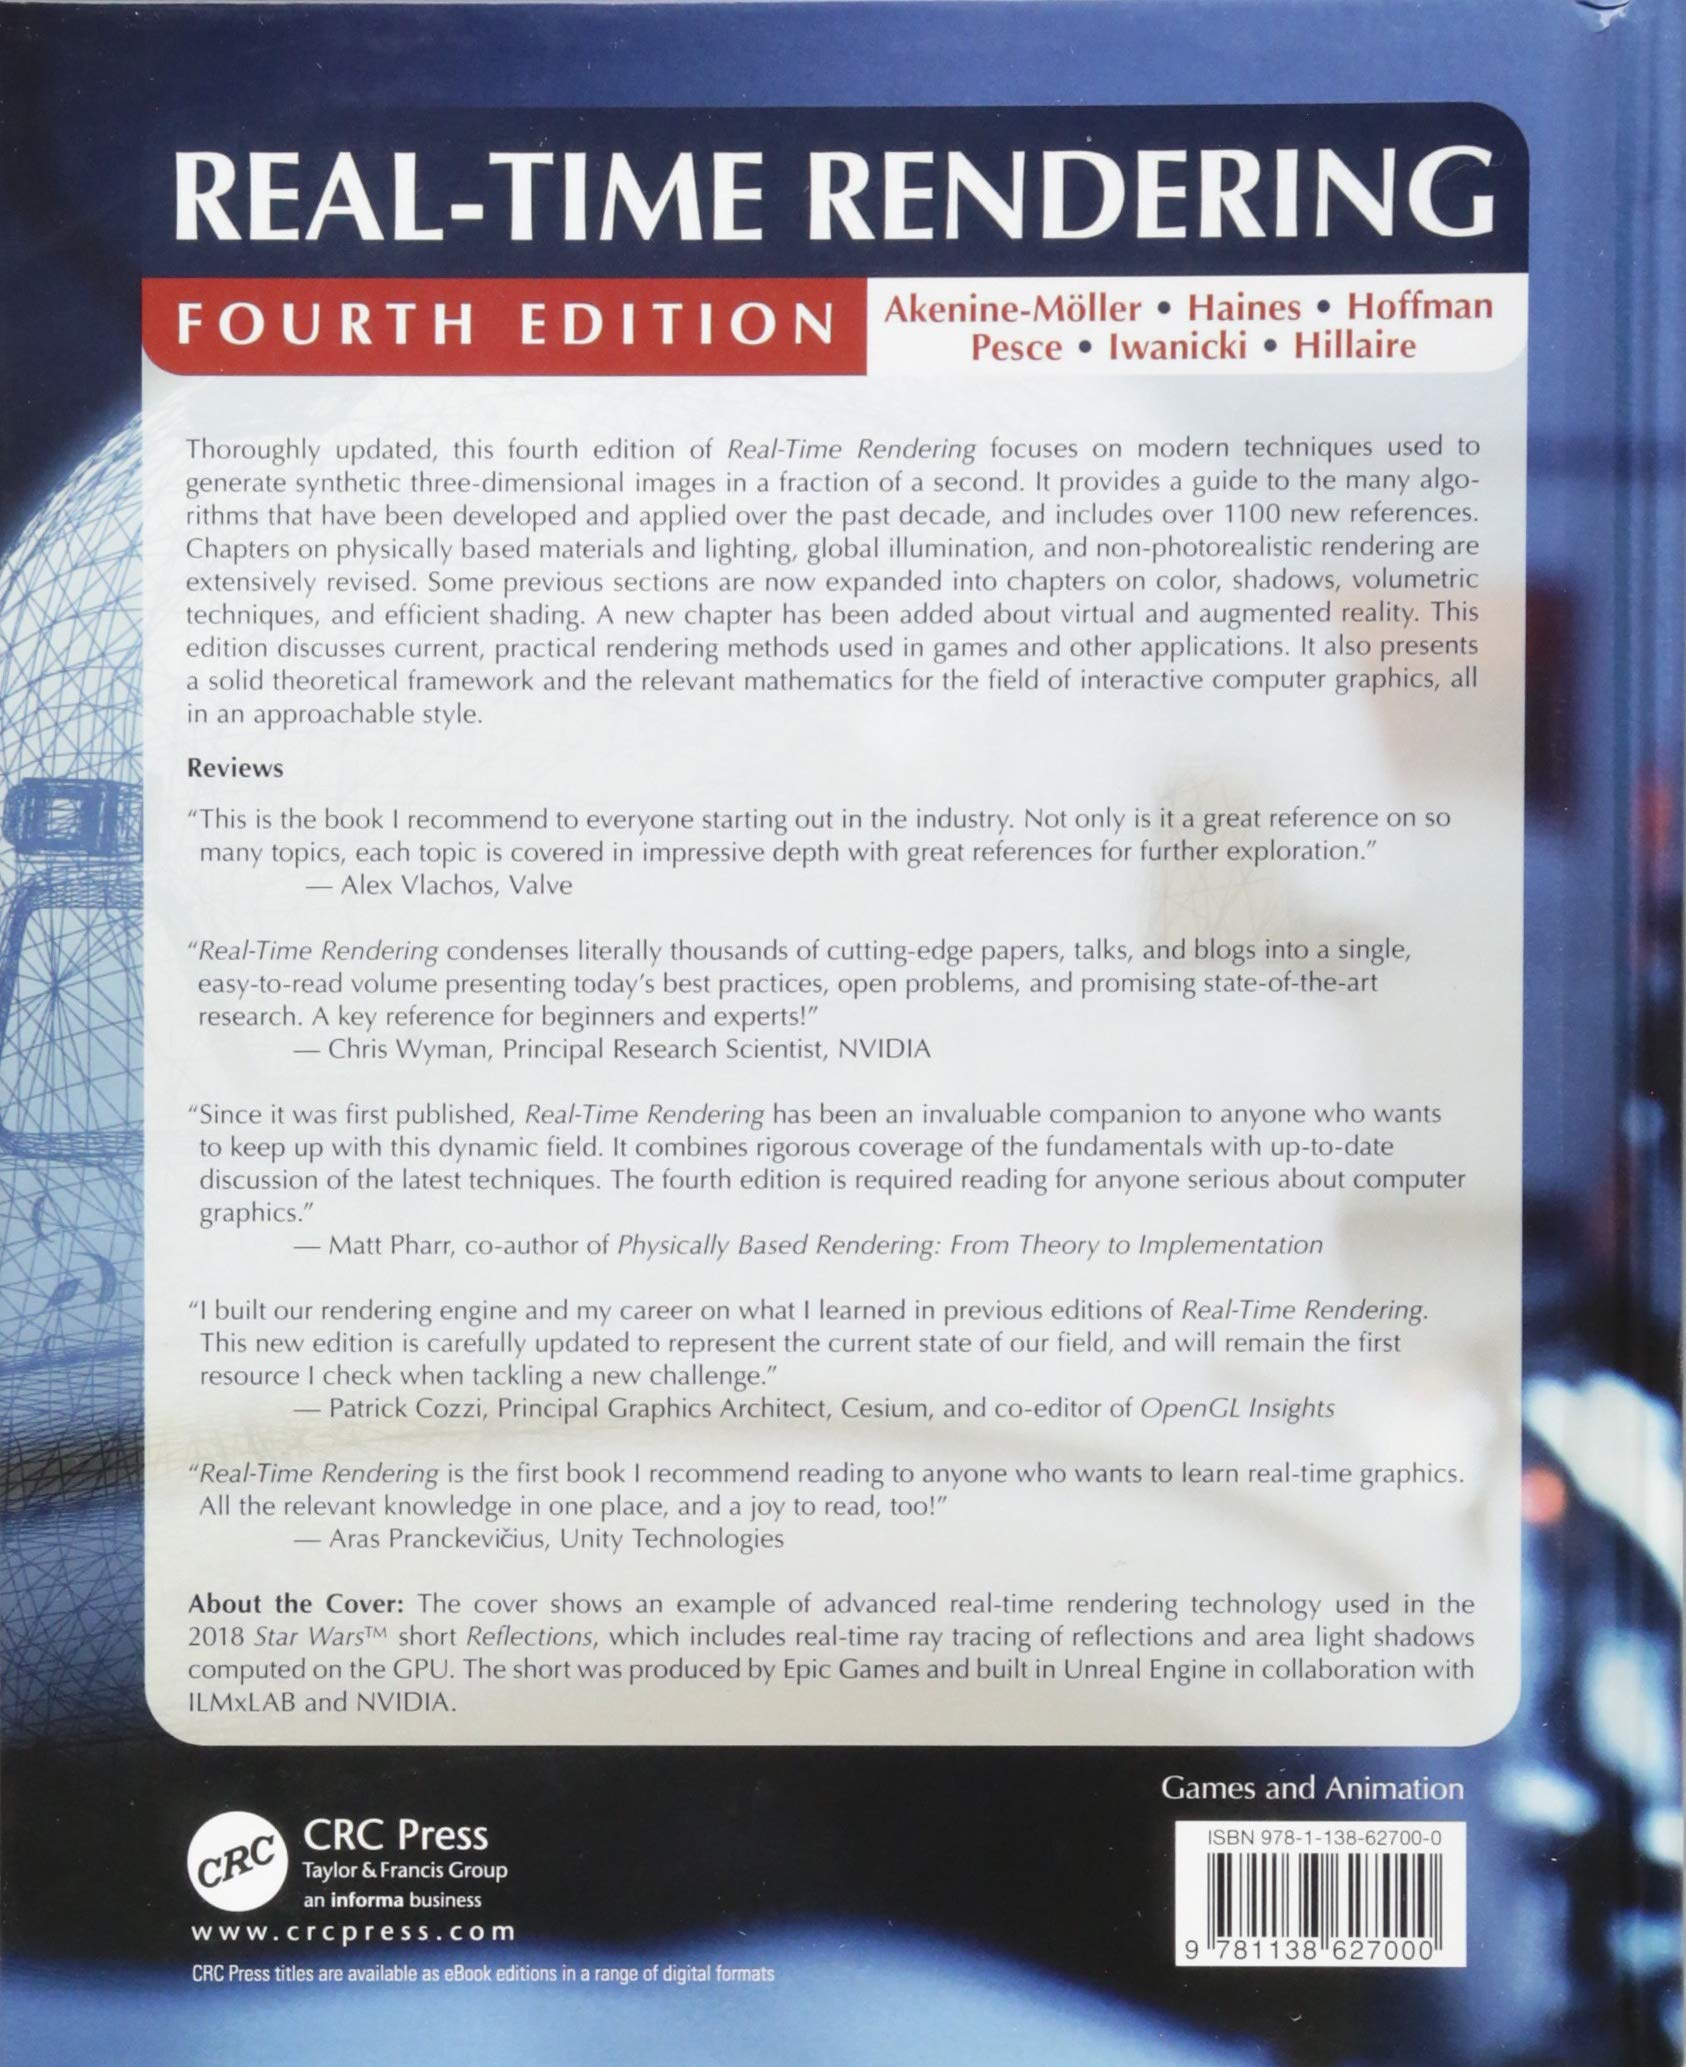 Buy Real-Time Rendering, Fourth Edition Book Online at Low Prices in